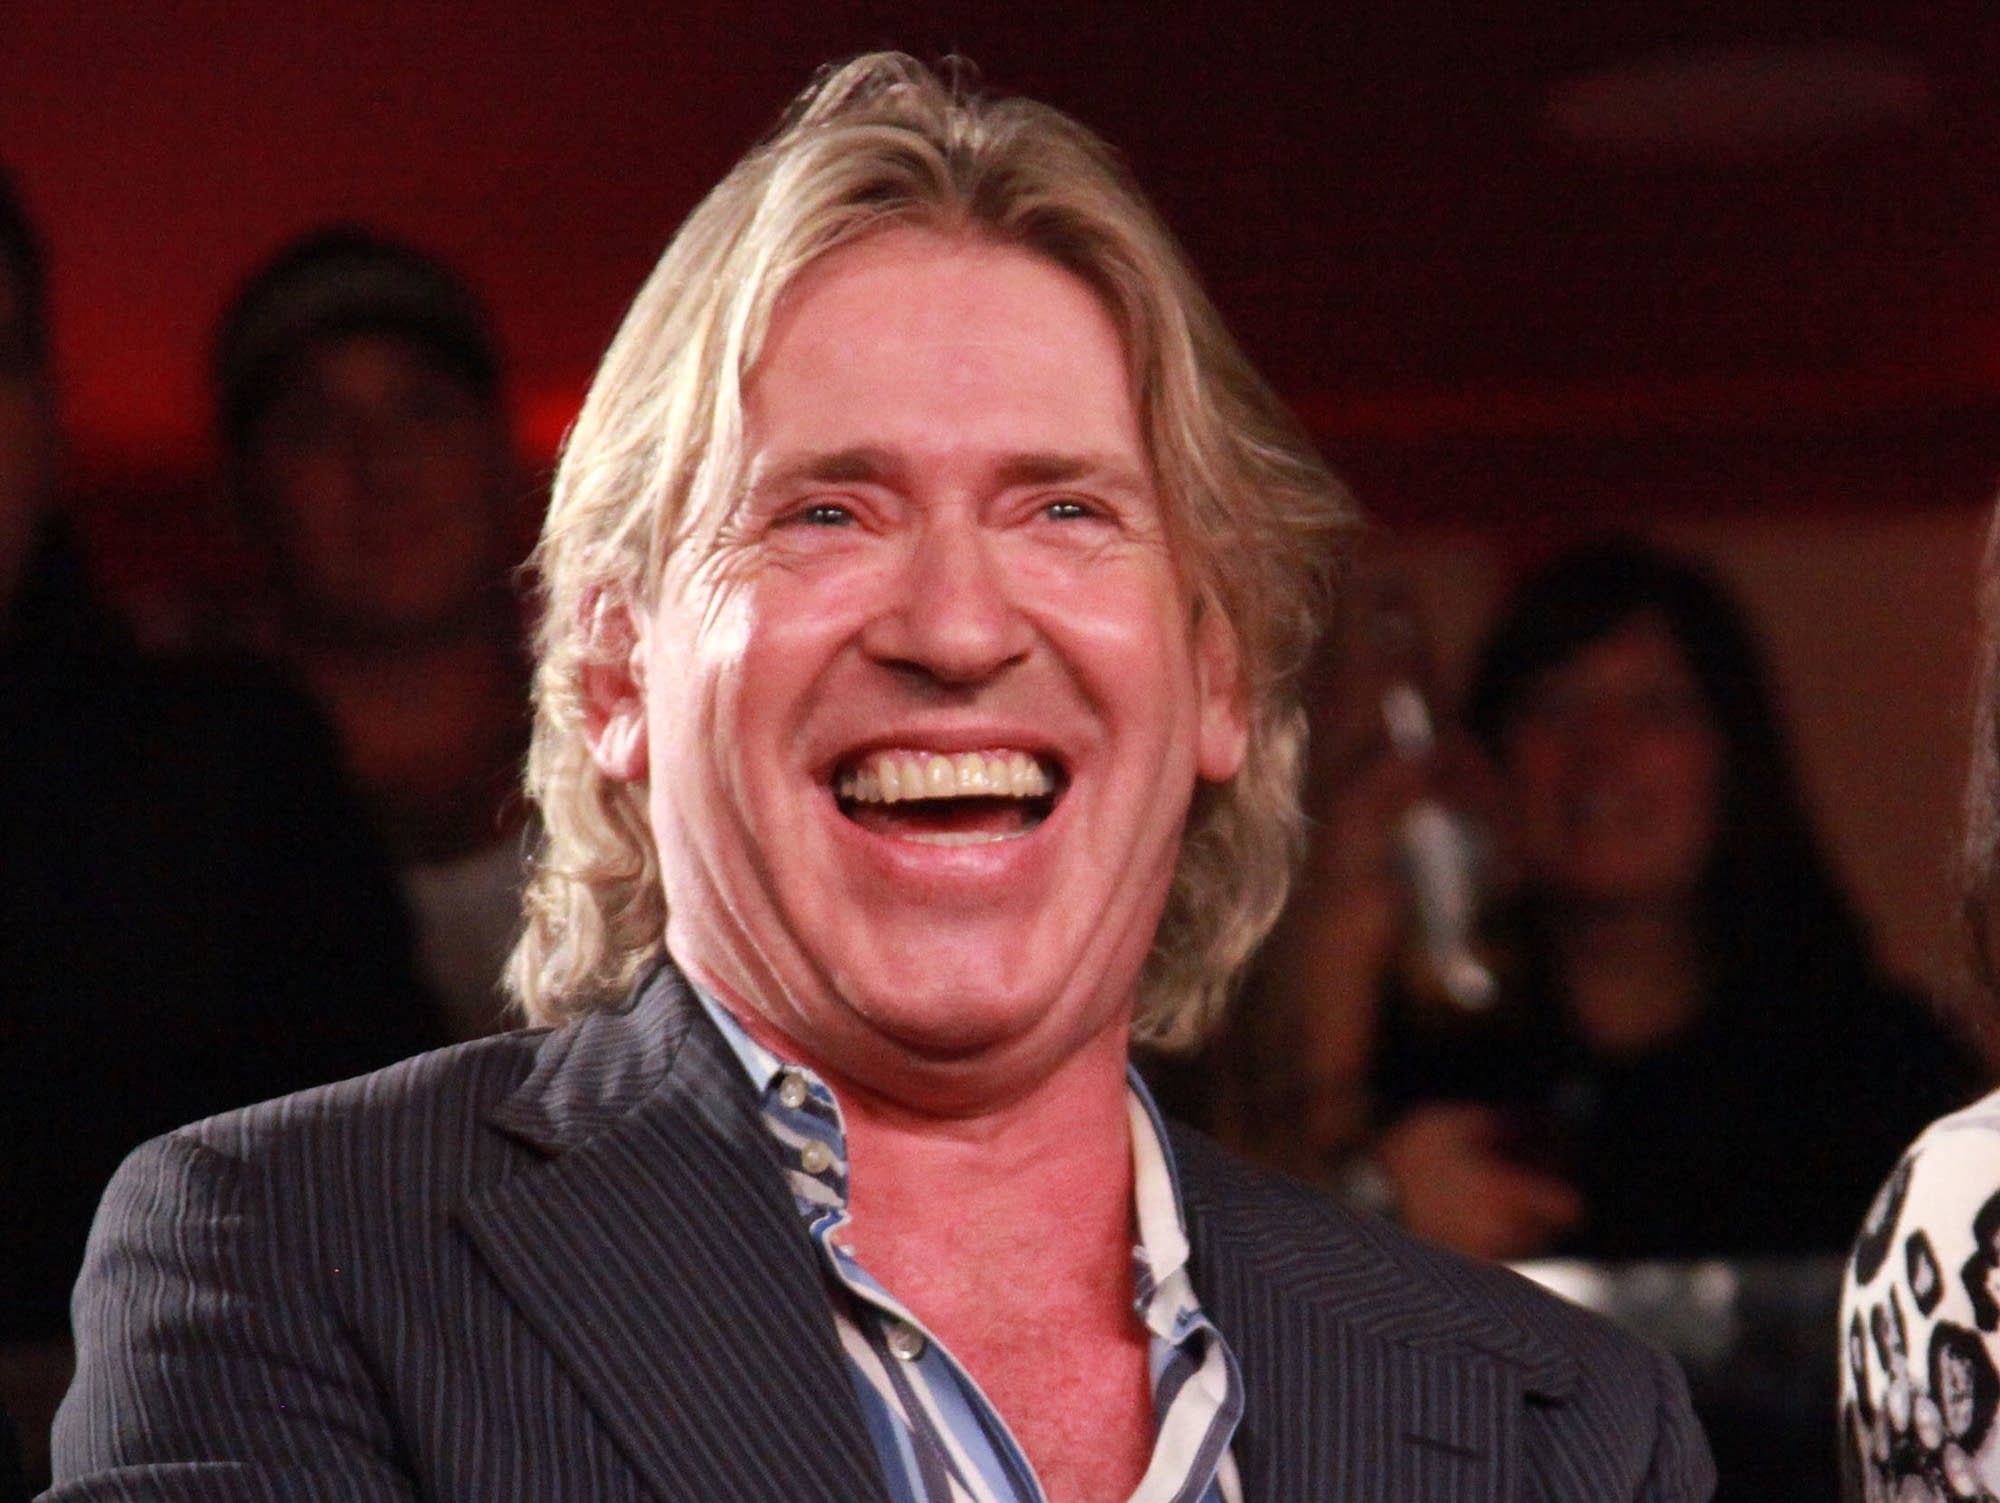 Steve Lillywhite in 2011